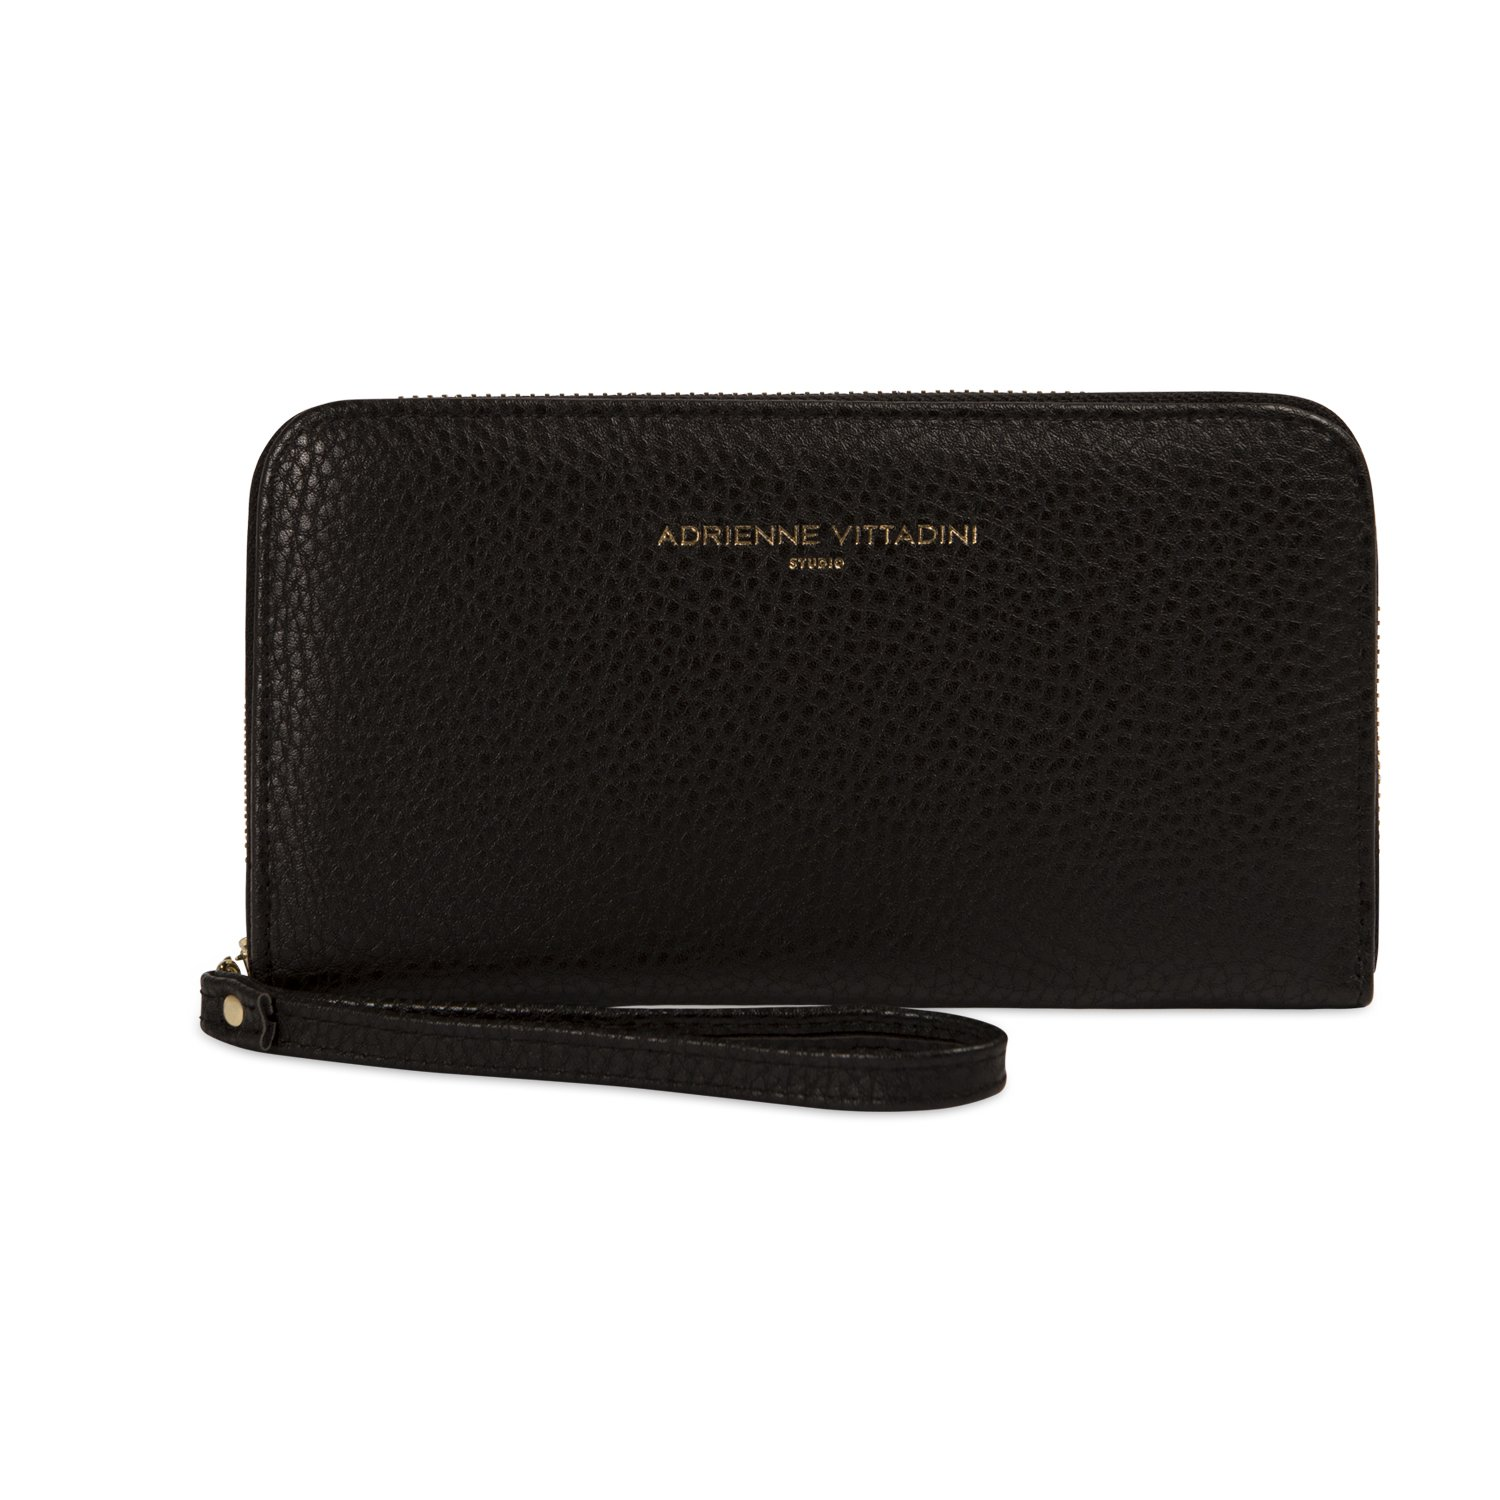 Adrienne Vittadini Charging Zip Around Wallet Wristlet - iPhone Android - Black Pebble